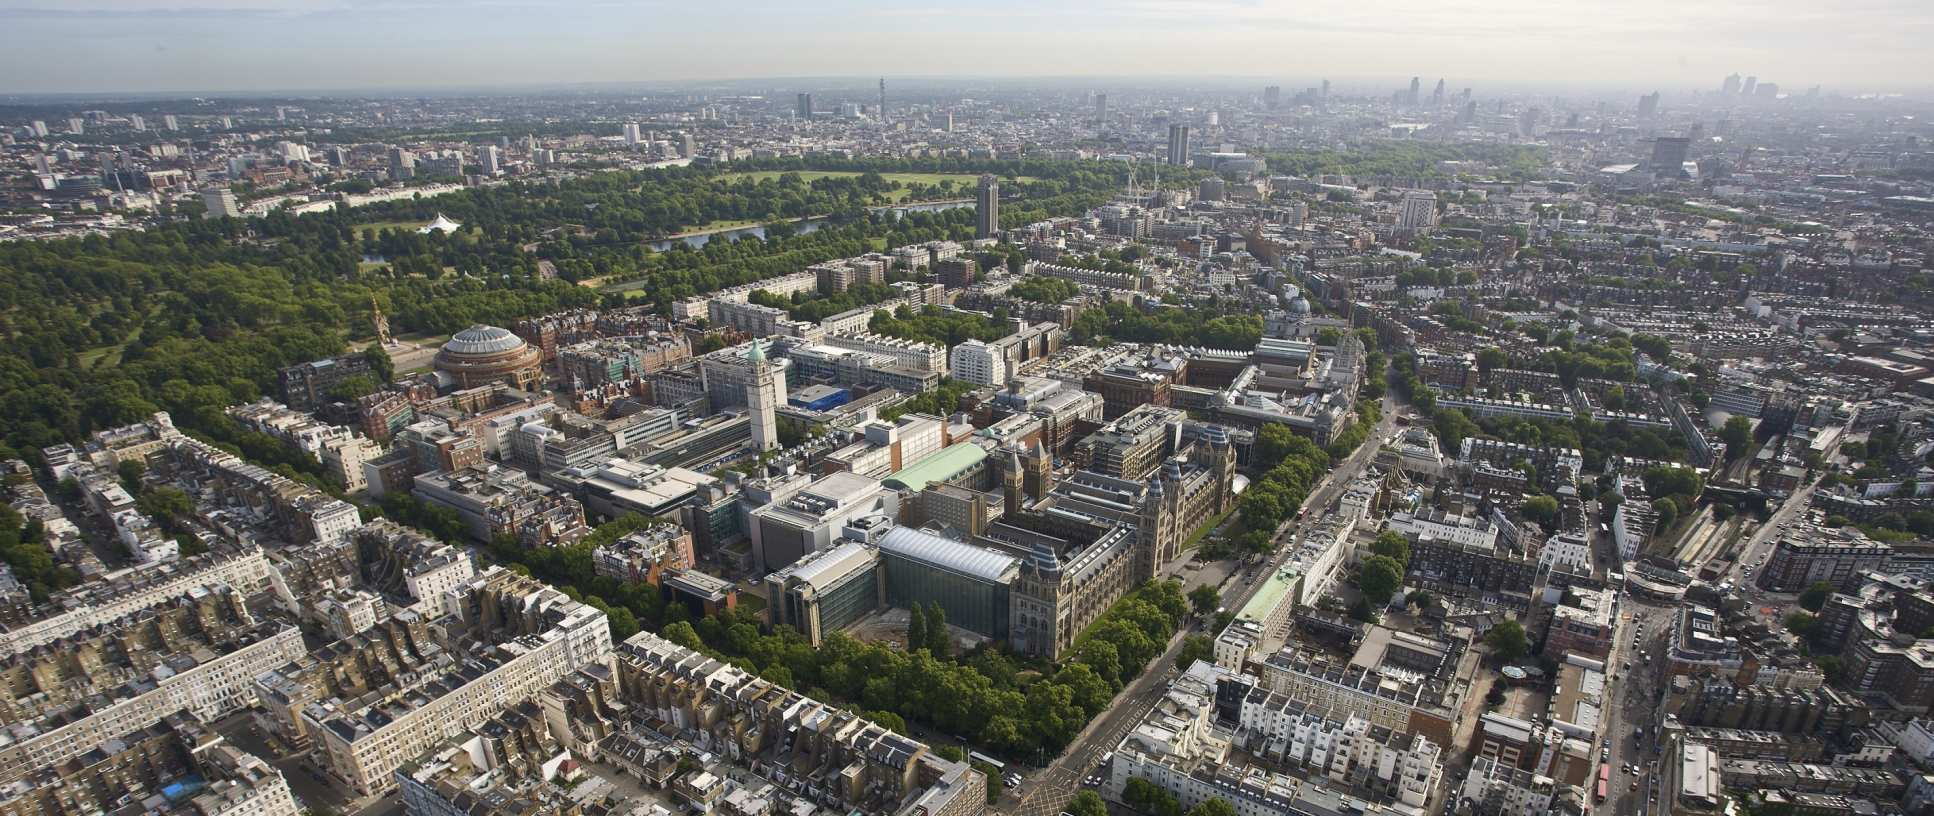 Aerial shot of South Kensington campus